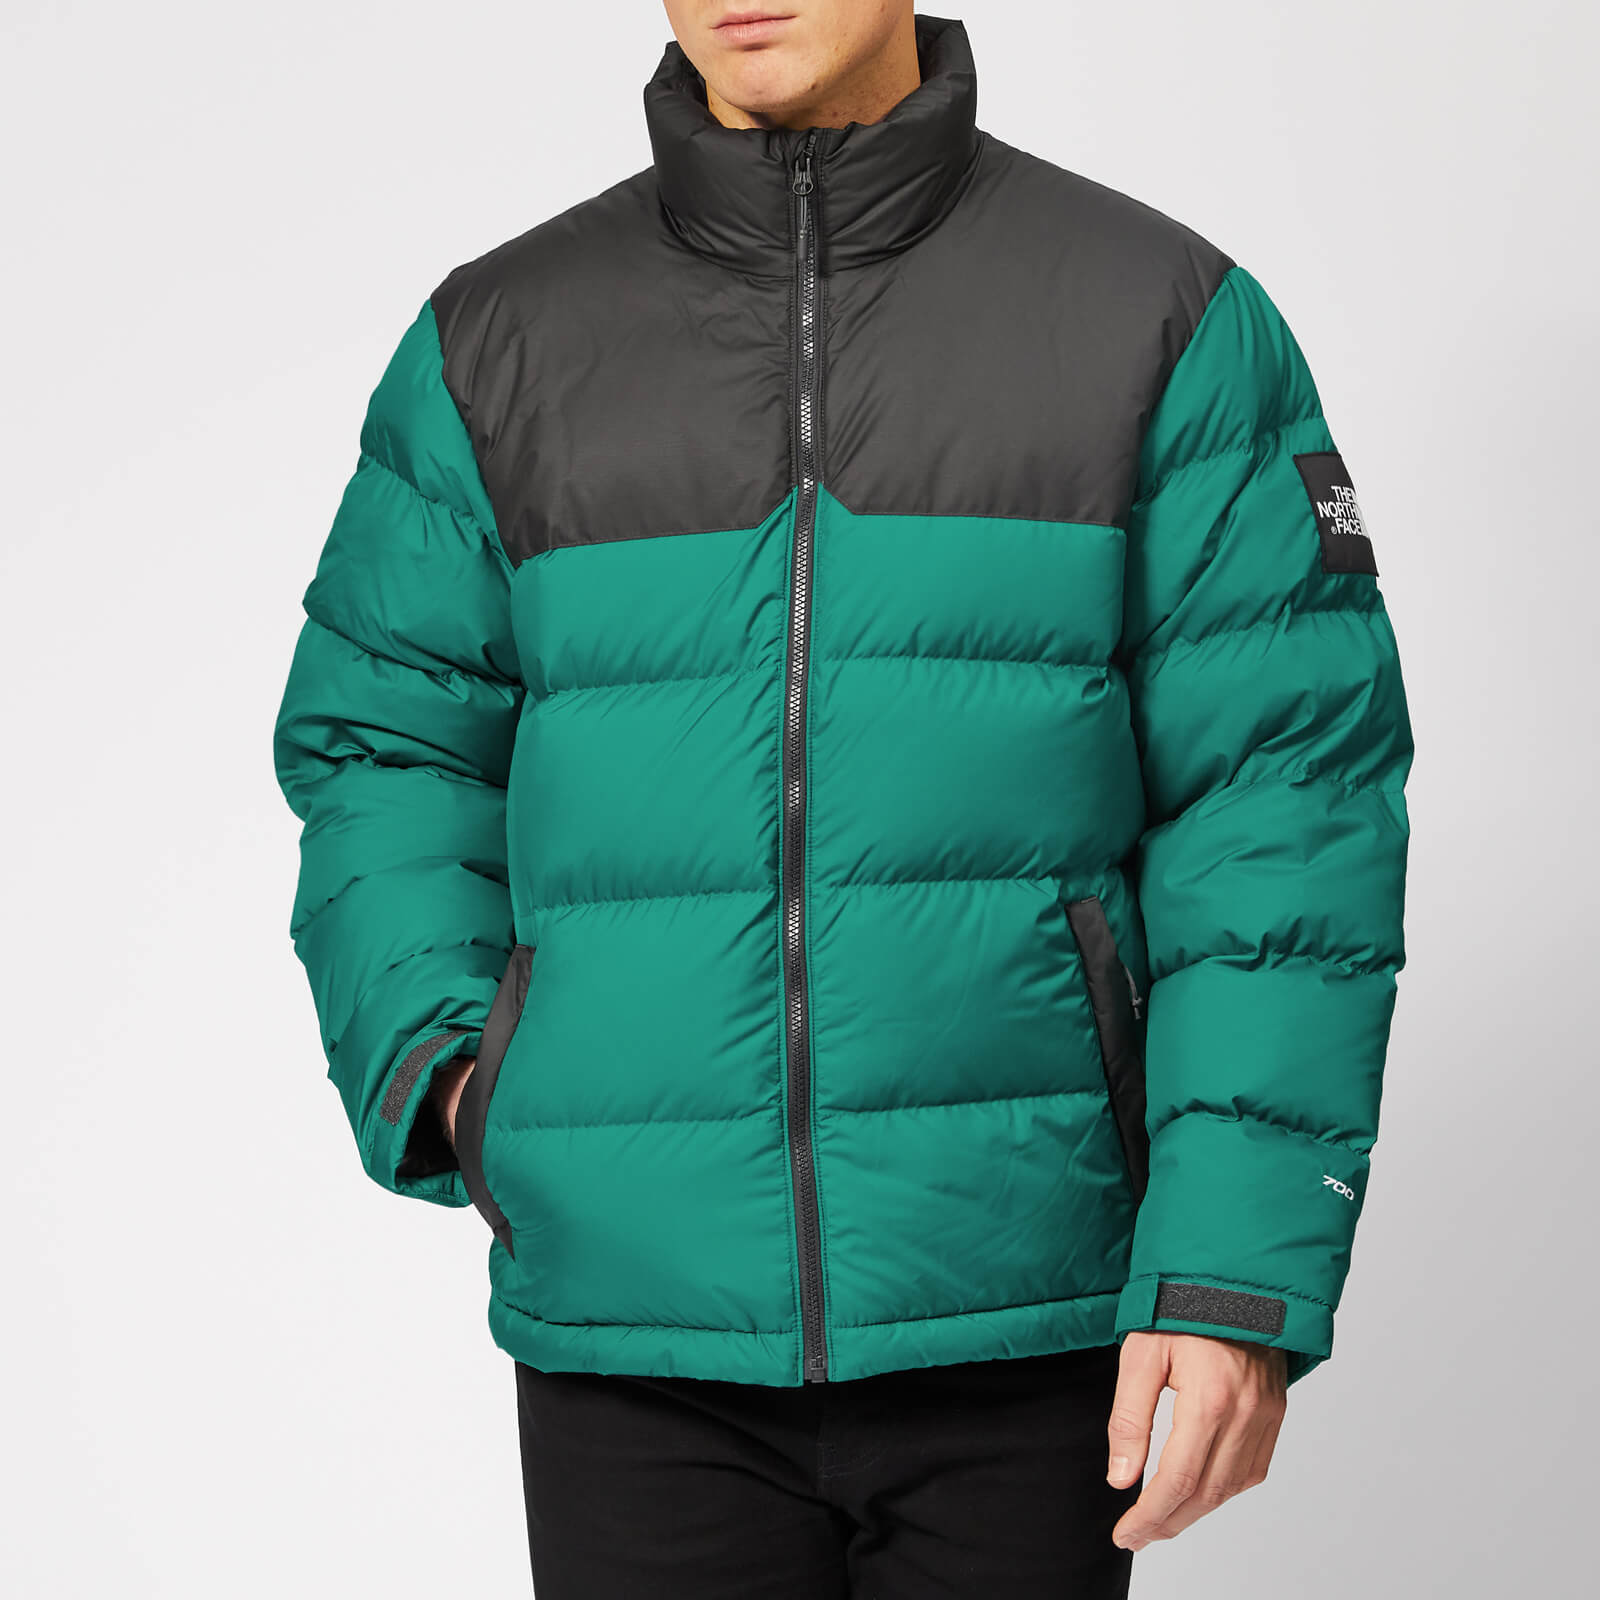 e8f1efc412 The North Face Men s 1992 Nuptse Jacket - Everglade Asphalt Grey - Free UK  Delivery over £50